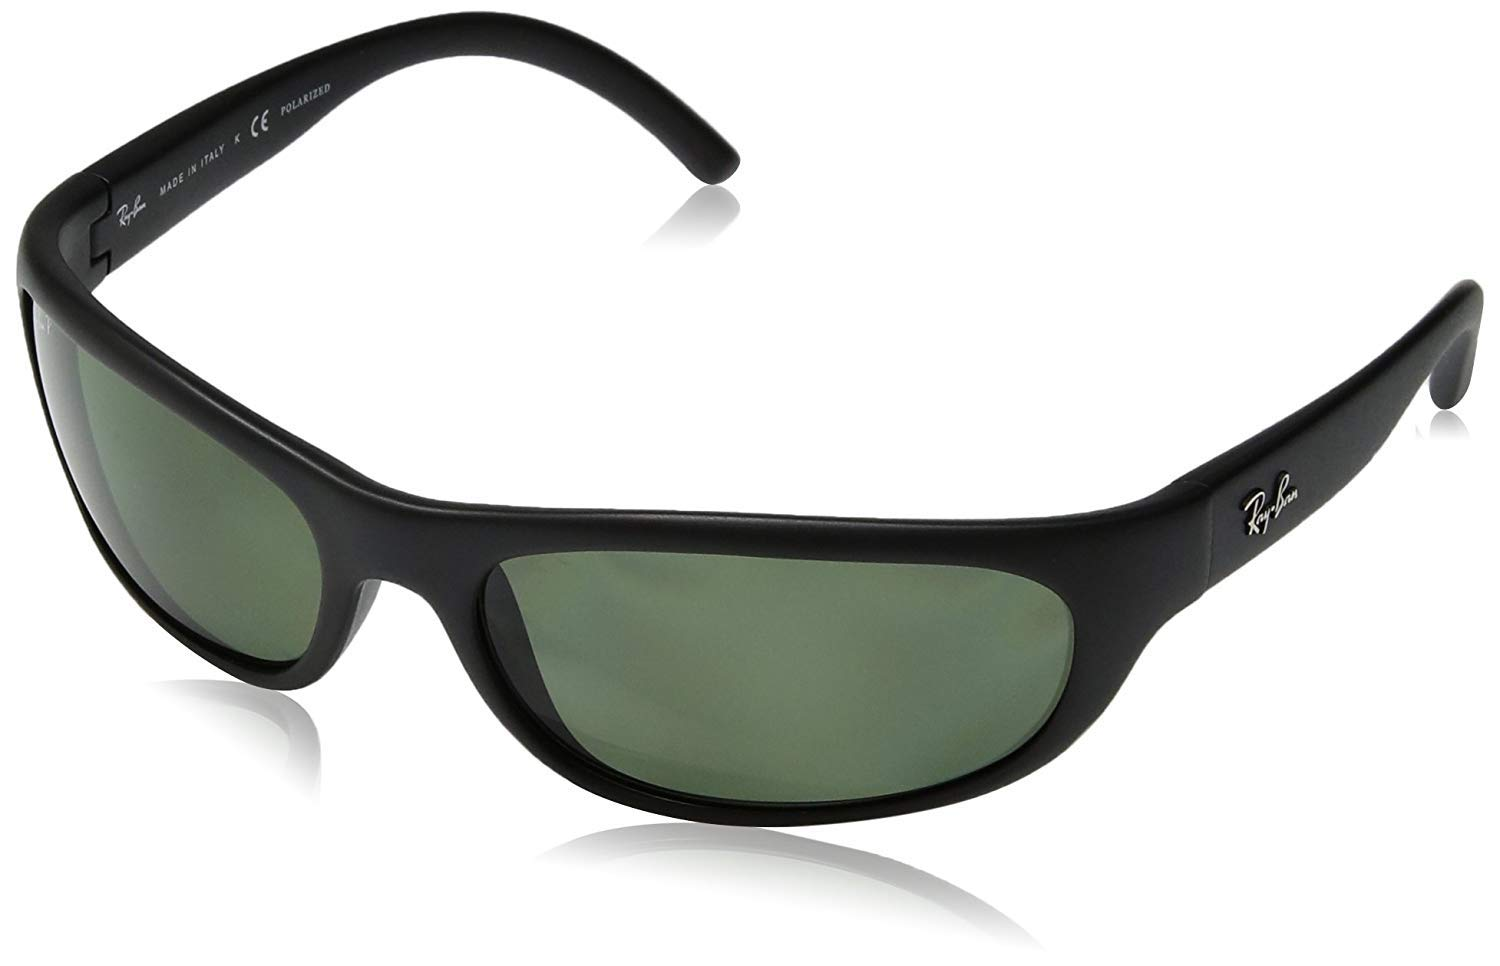 RAY-BAN RB4033 Polarized Rectangular Sunglasses, Matte Black/Polarized Green, 60 mm by RAY-BAN